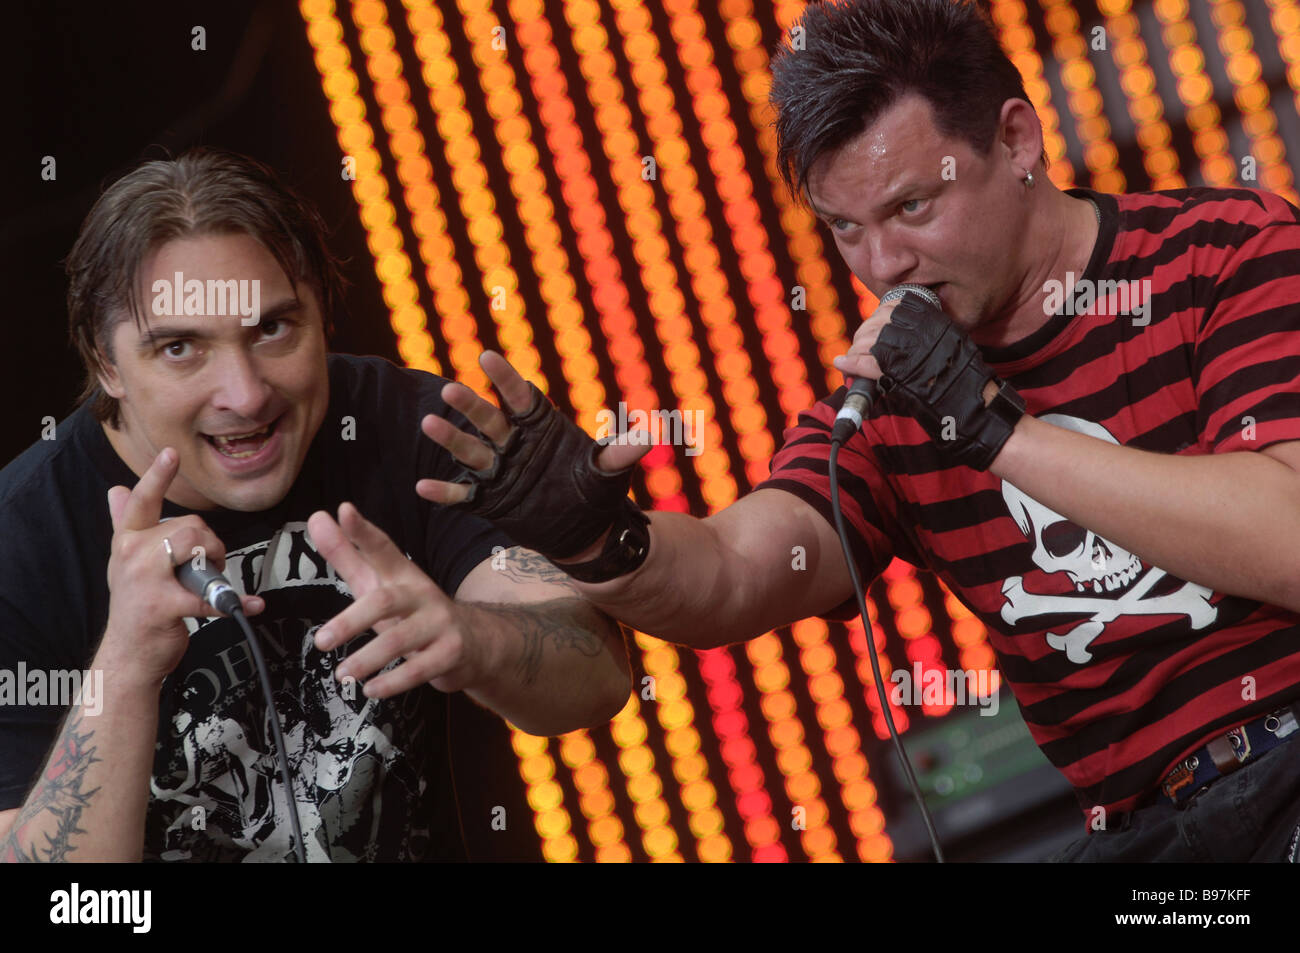 Rock group Korol and Shut King and Fool at the rock festival Krylya 2007 Mikhail Gorshenev left leader of the group - Stock Image